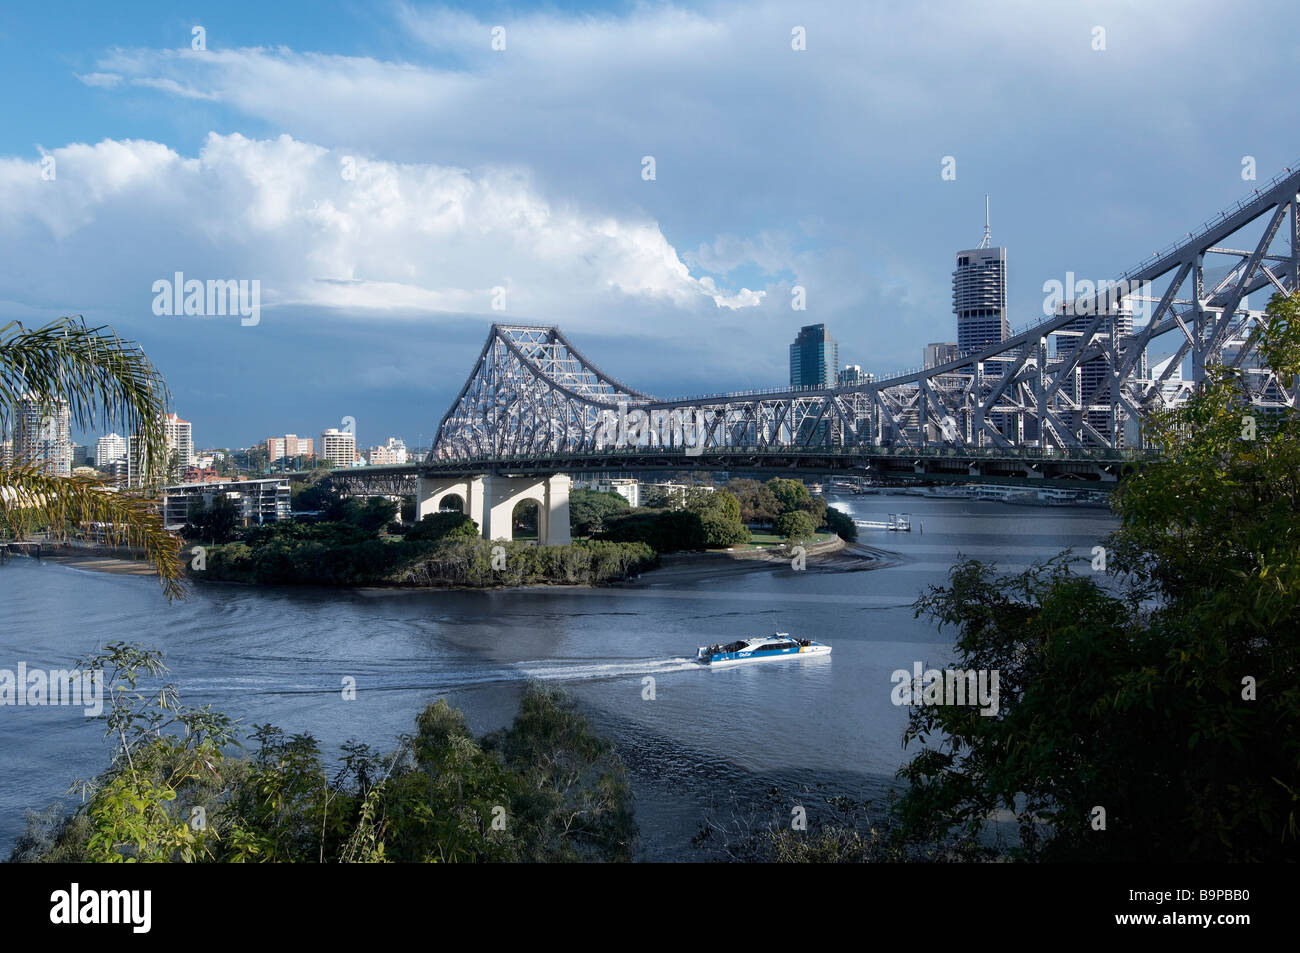 The Story Bridge Brisbane Australia - Stock Image